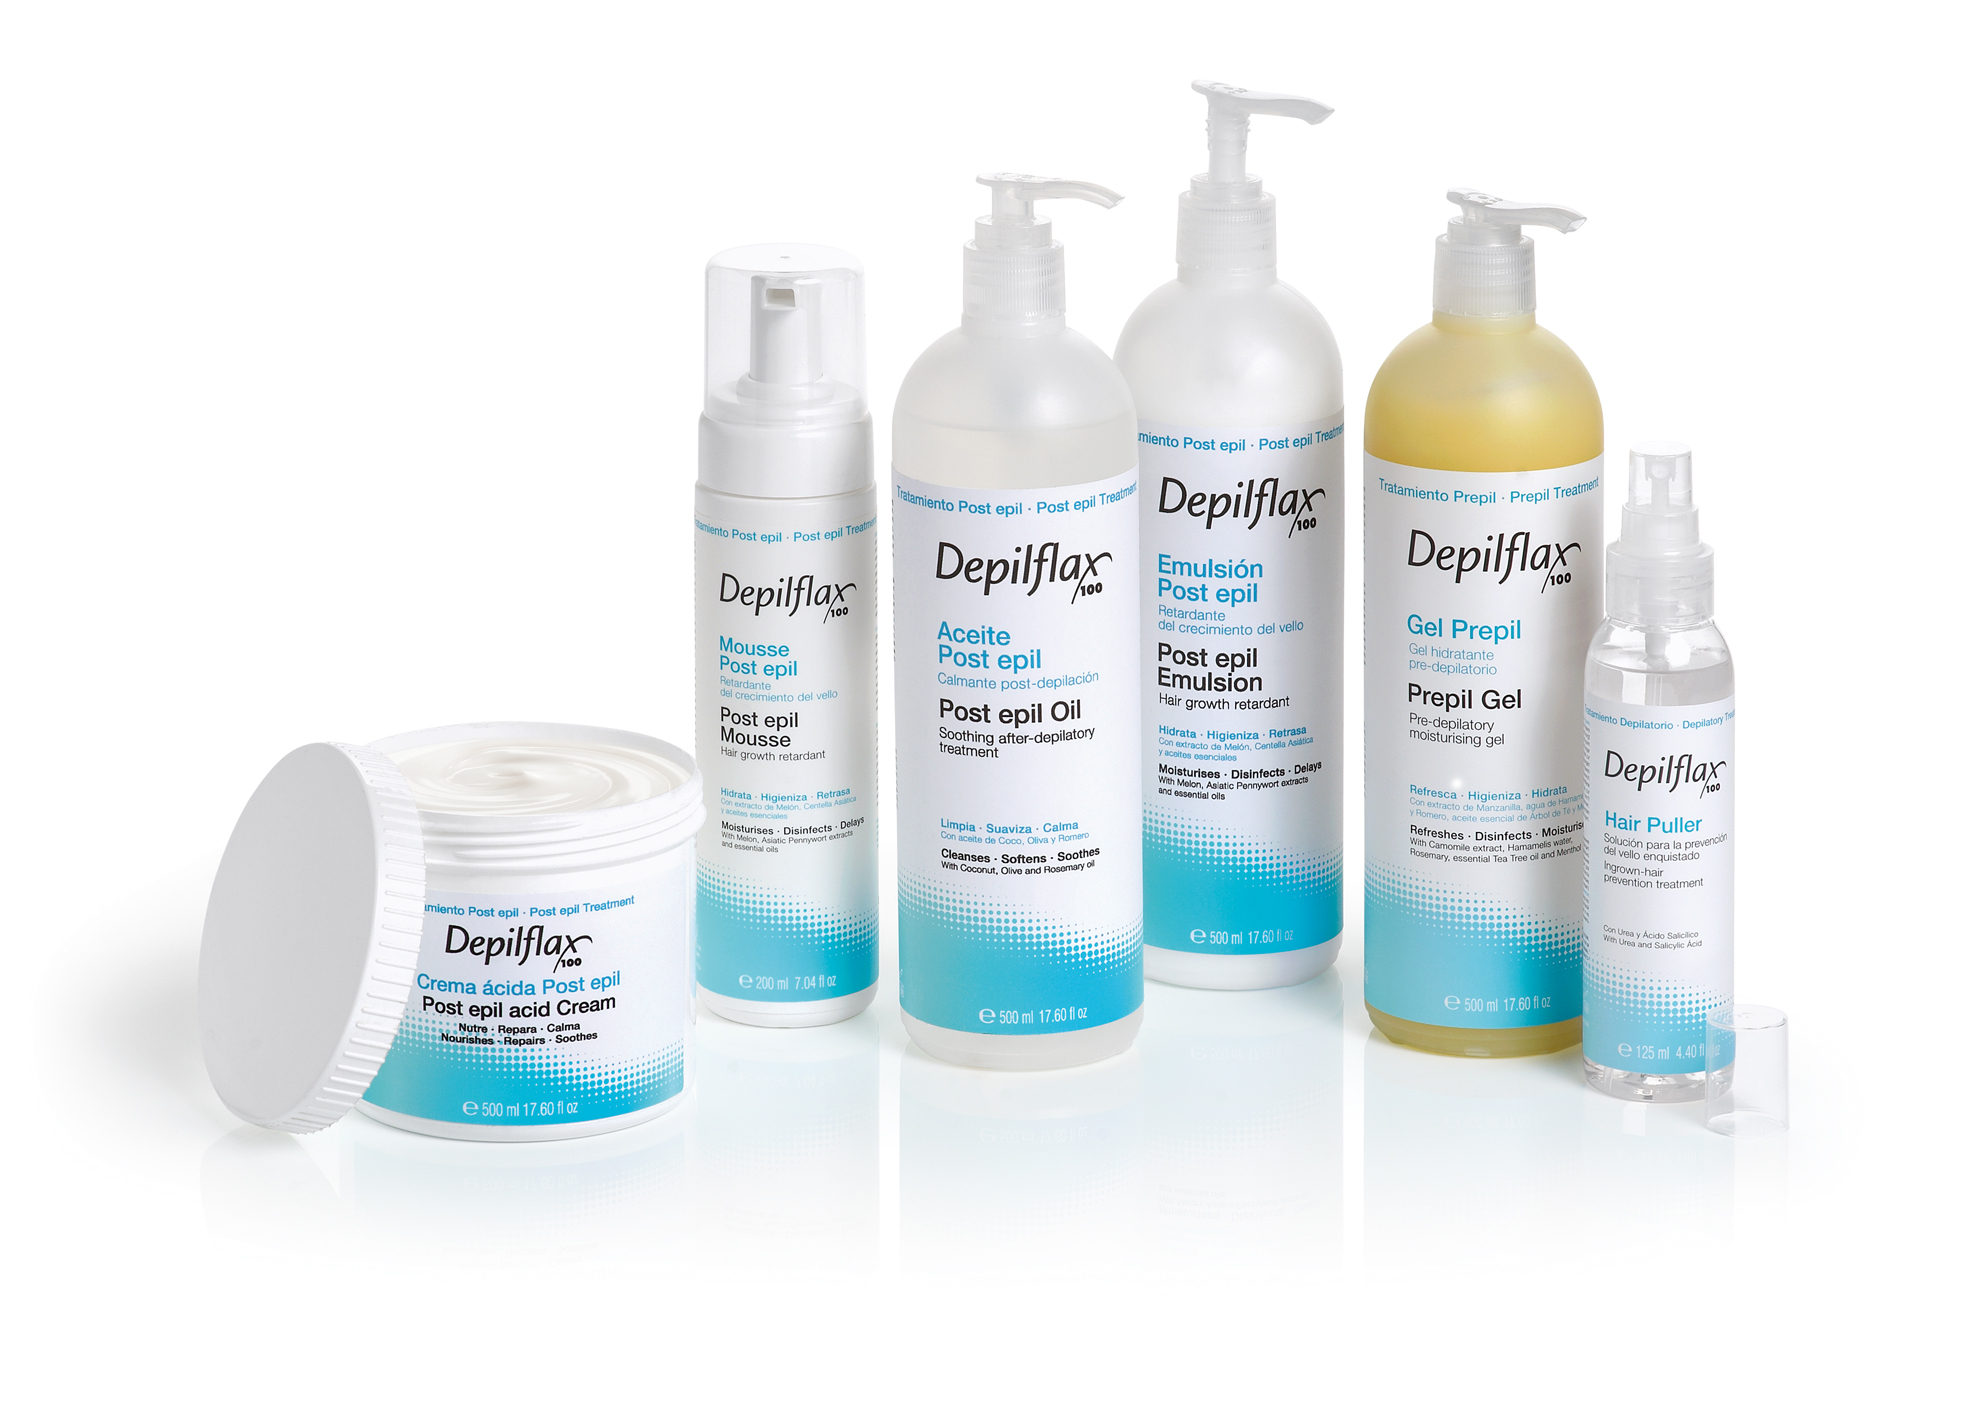 DP_bodegon_cosmetica_depilatoria_small